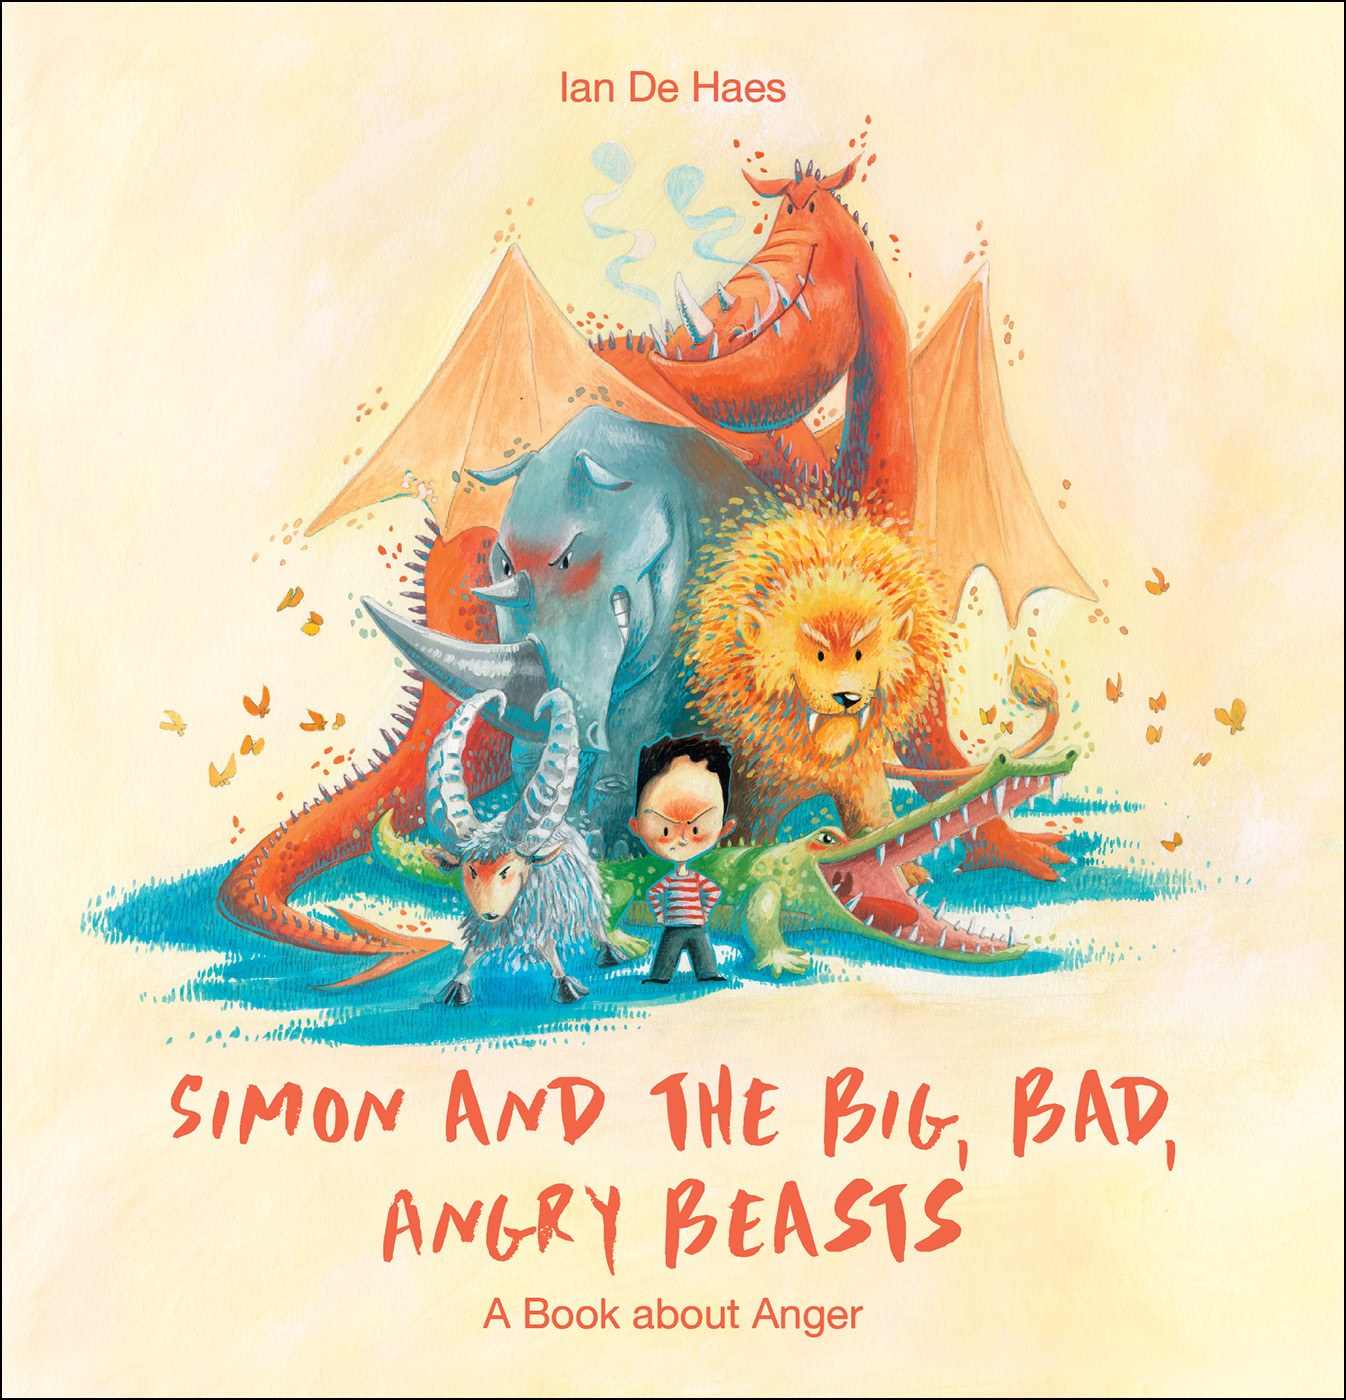 Simon and the beasts - bibliophile review